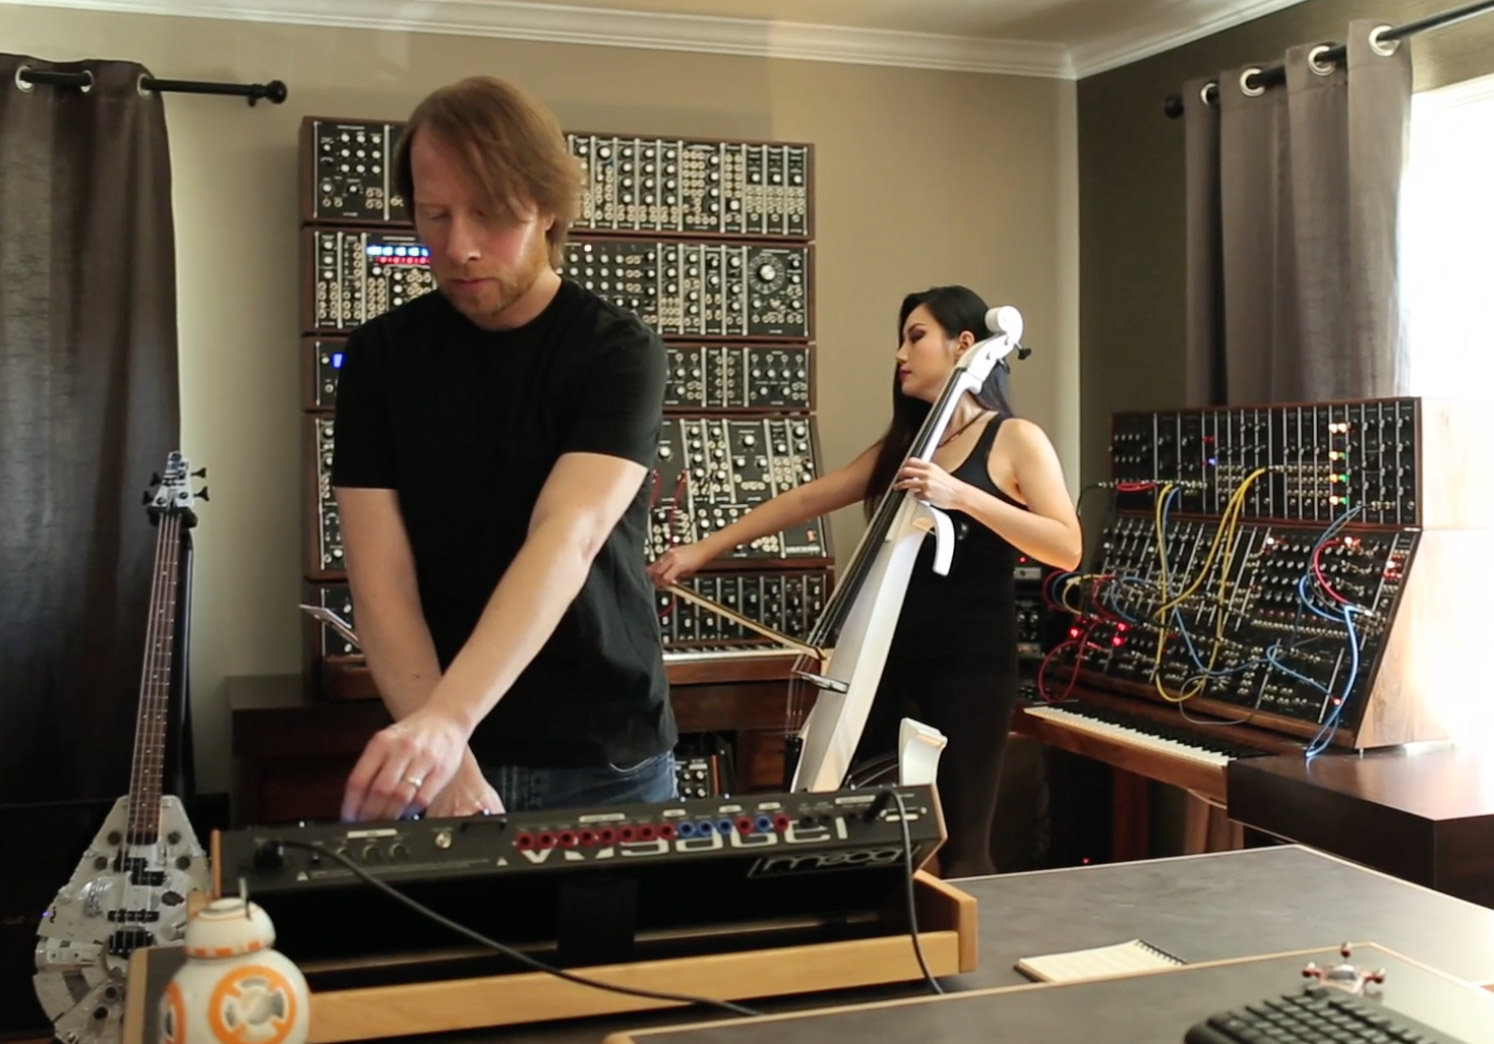 Bill and Tina in the studio - Oct. 2015